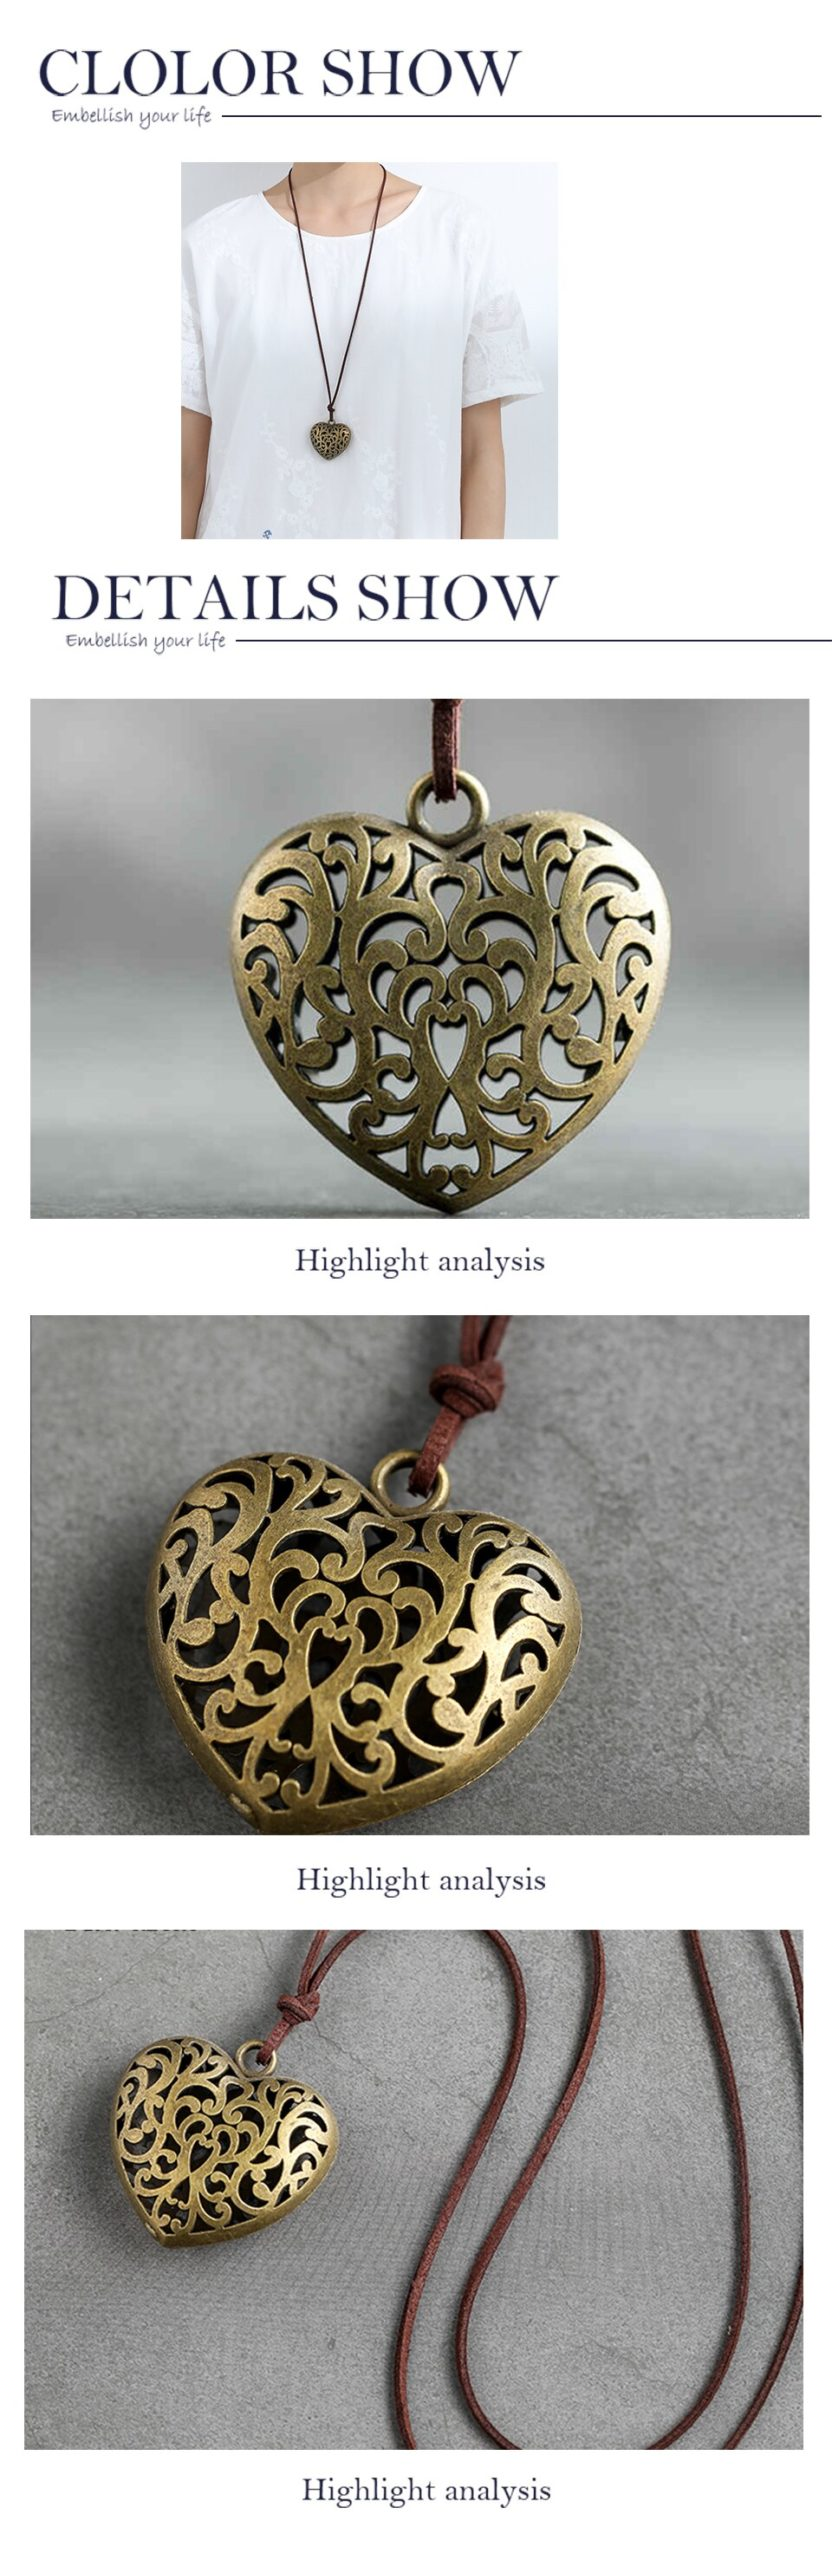 Vintage Jewelry for Women Long Necklace Bronze Big Heart Love Pendant Rope Chain Jewellery Alloy Suspension Wholesale Chokers